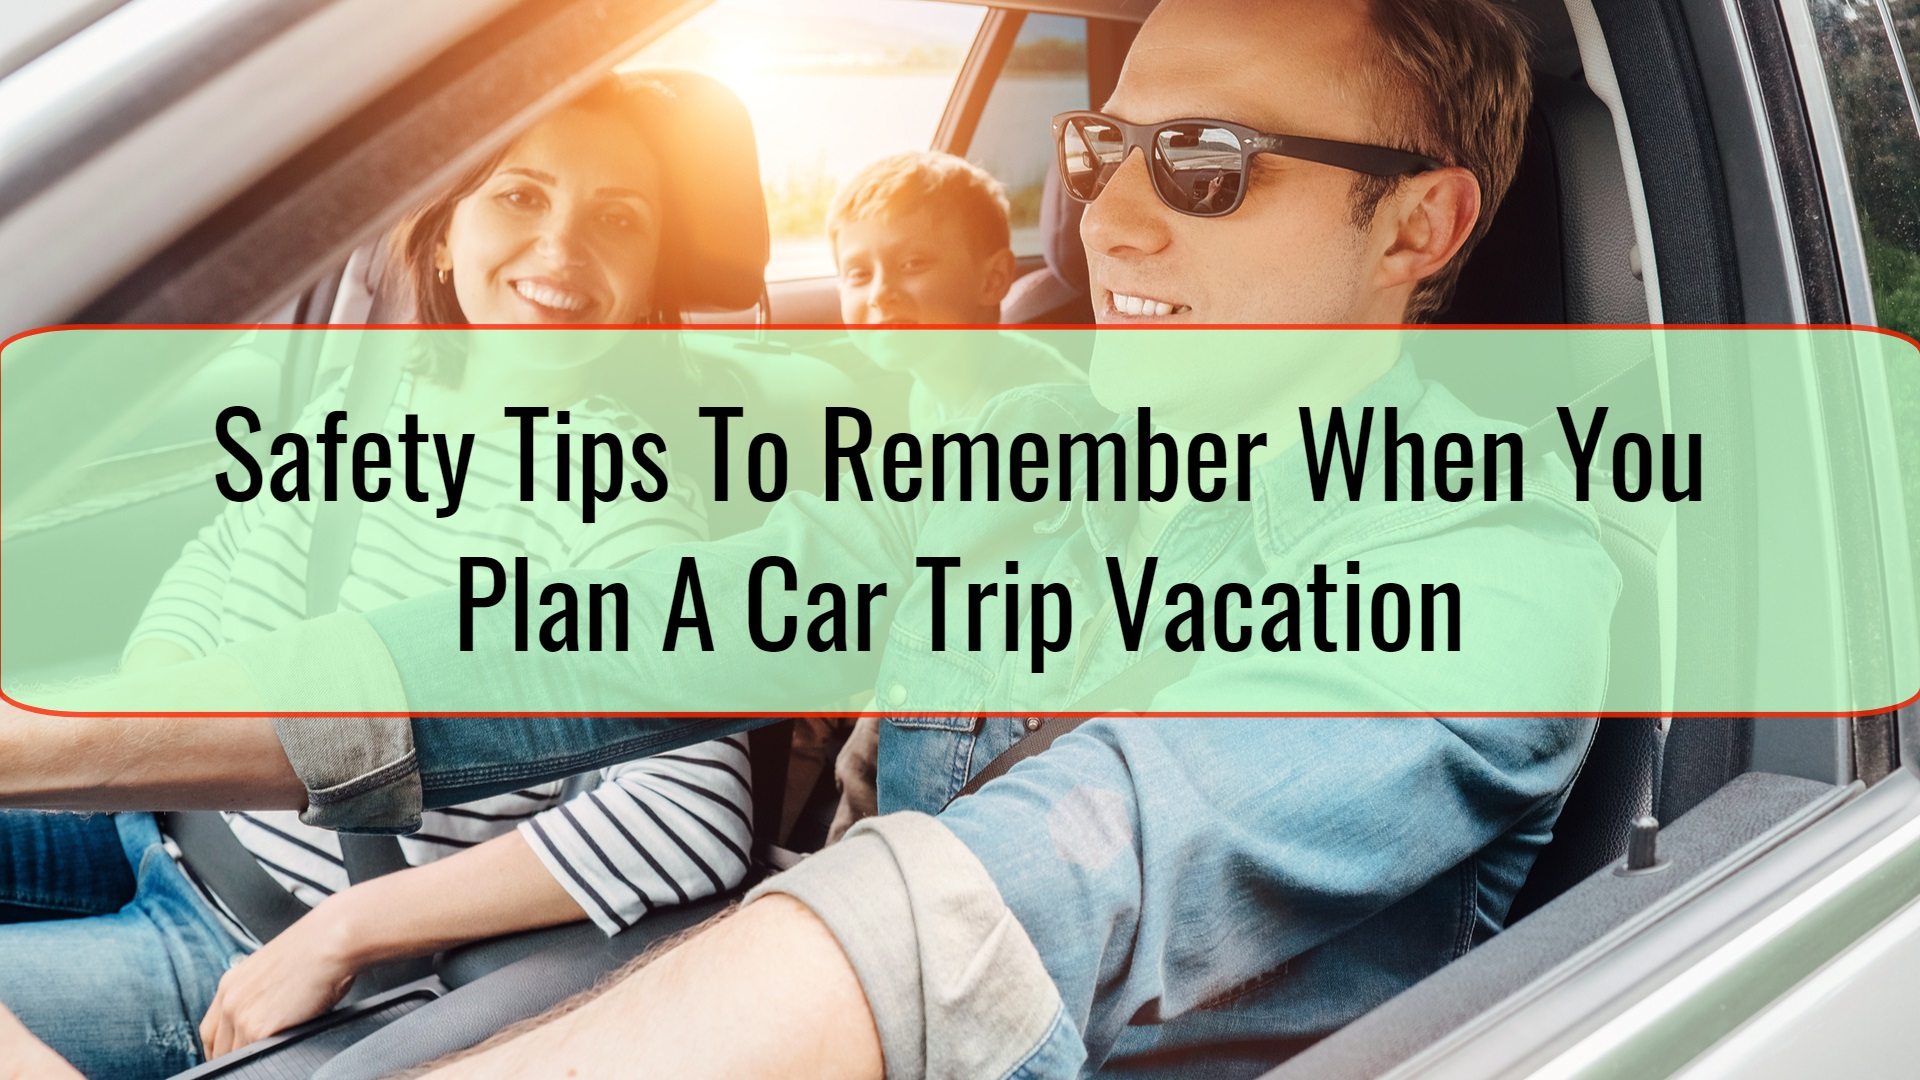 Safety Tips To Remember When You Plan A Car Trip Vacation